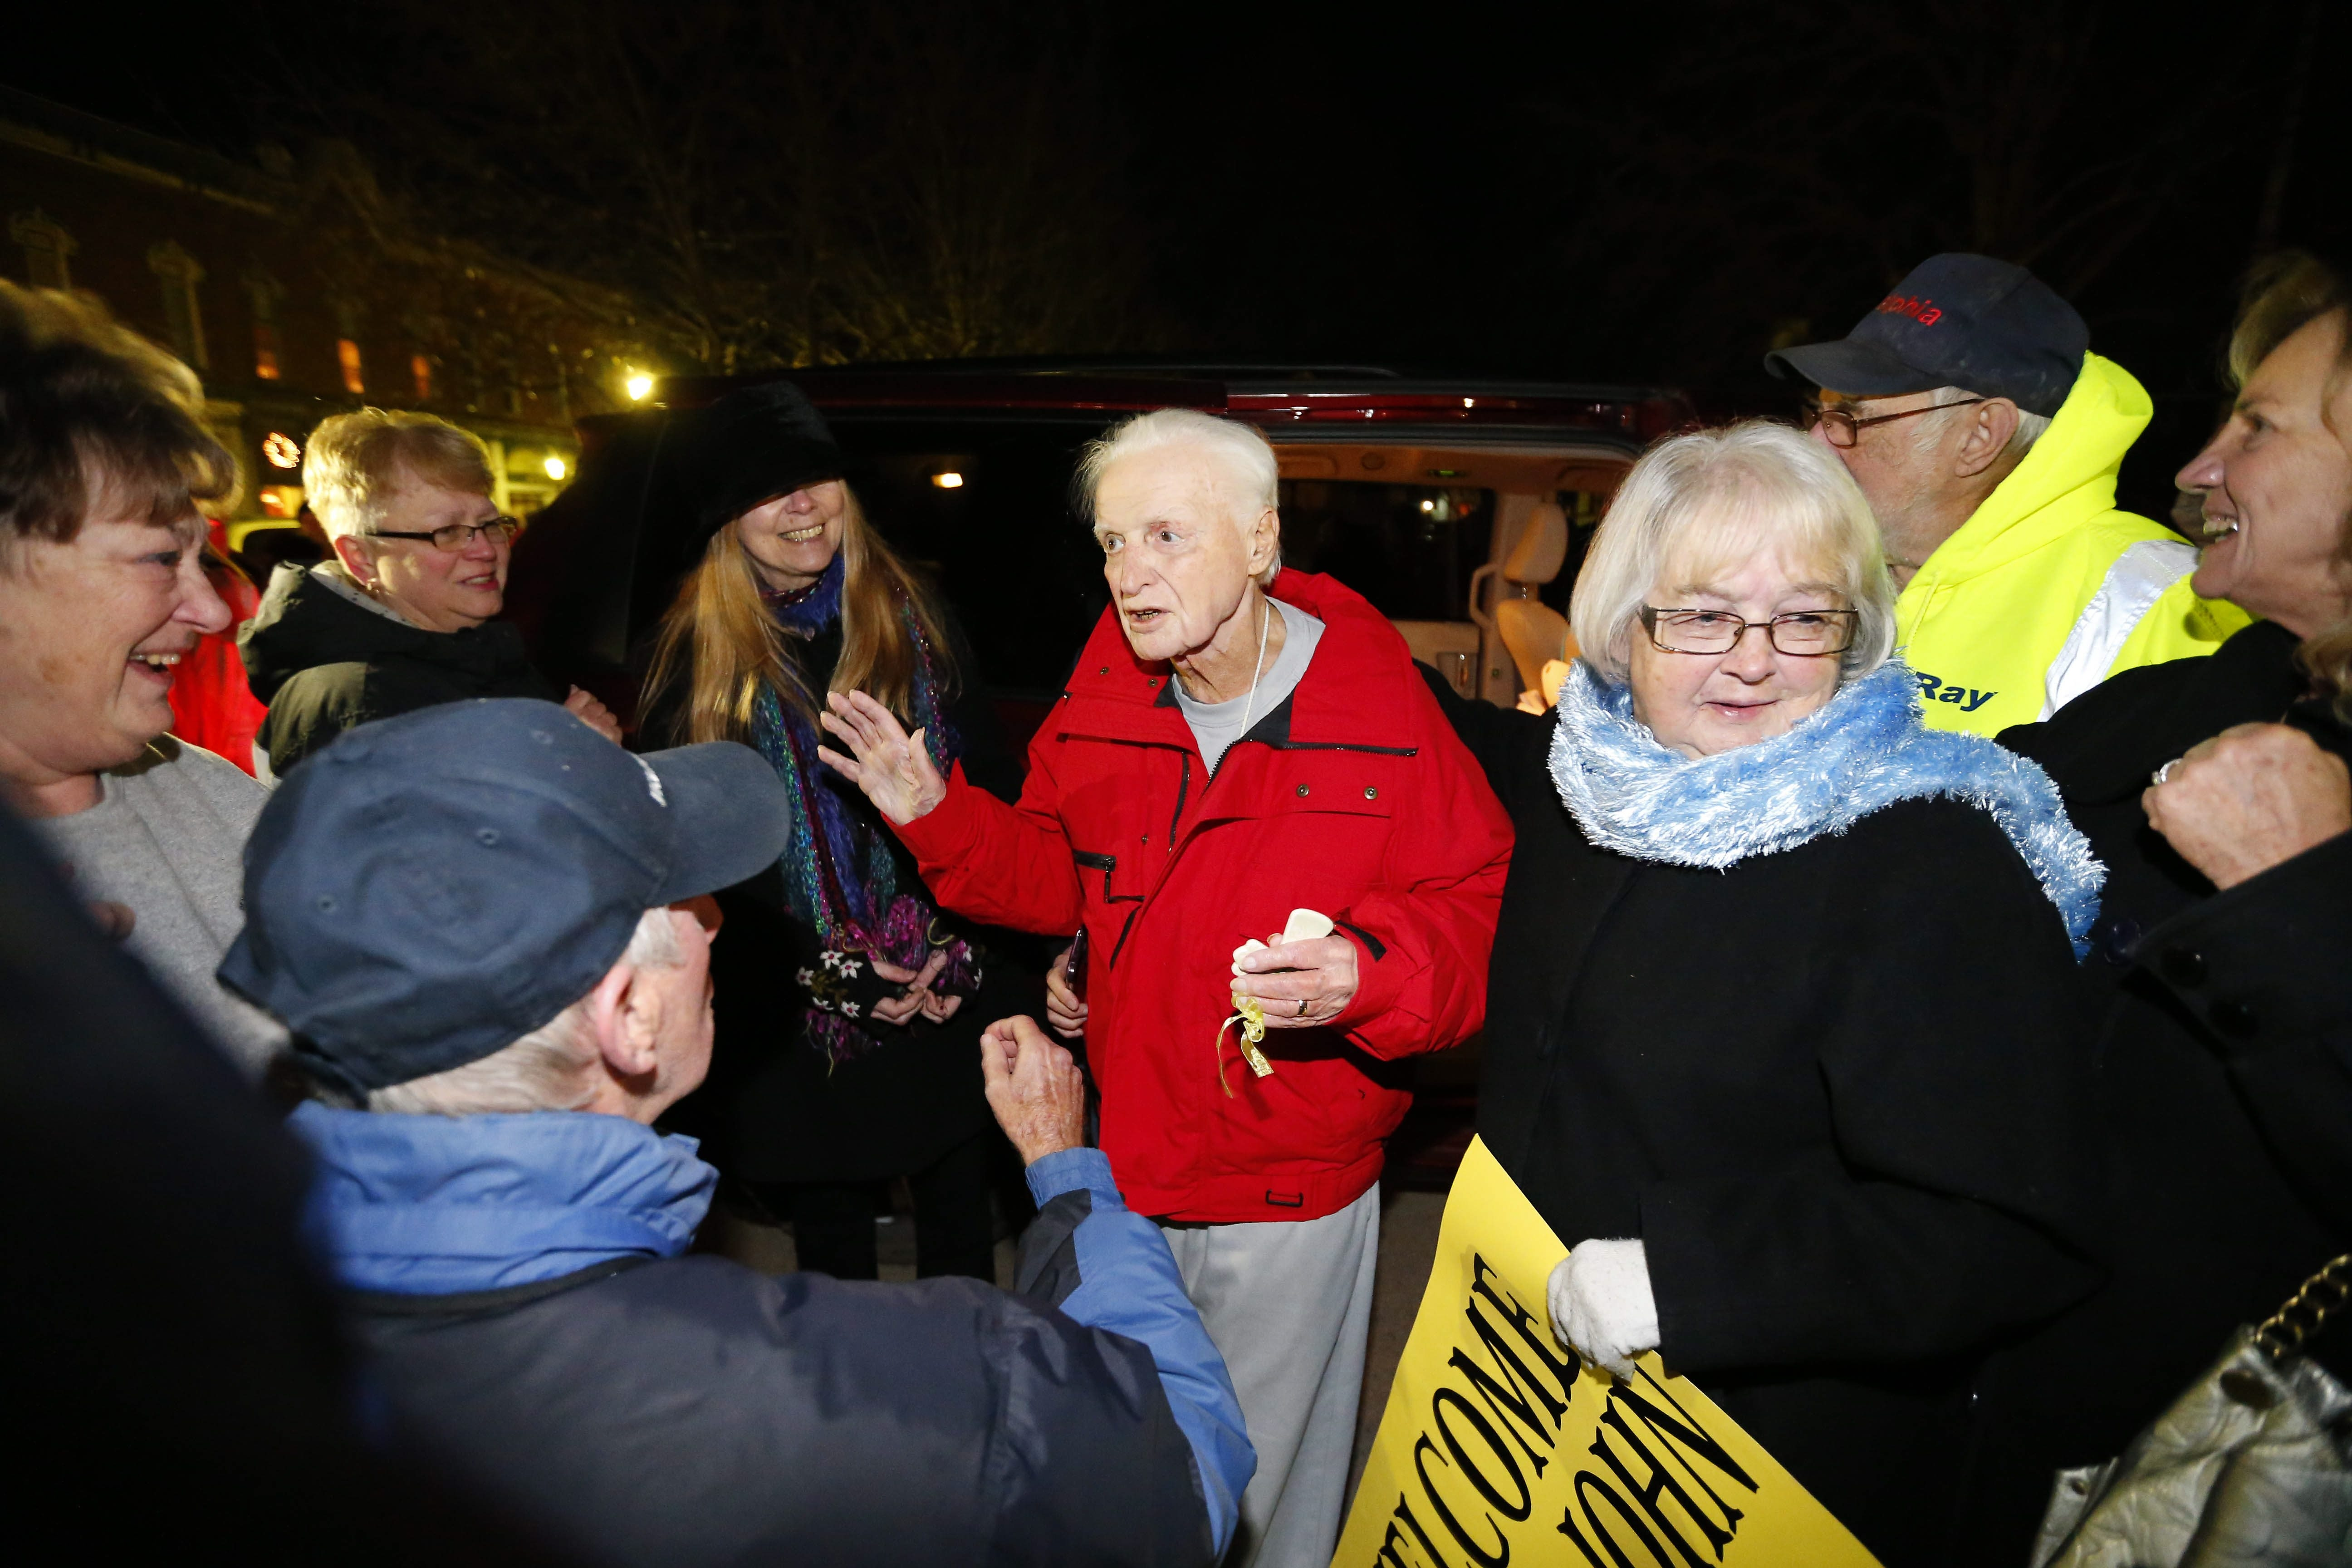 John Rigas is welcomed home from prison by the people of Coudersport, PA Monday, February 22, 2016.   (Mark Mulville/Buffalo News)